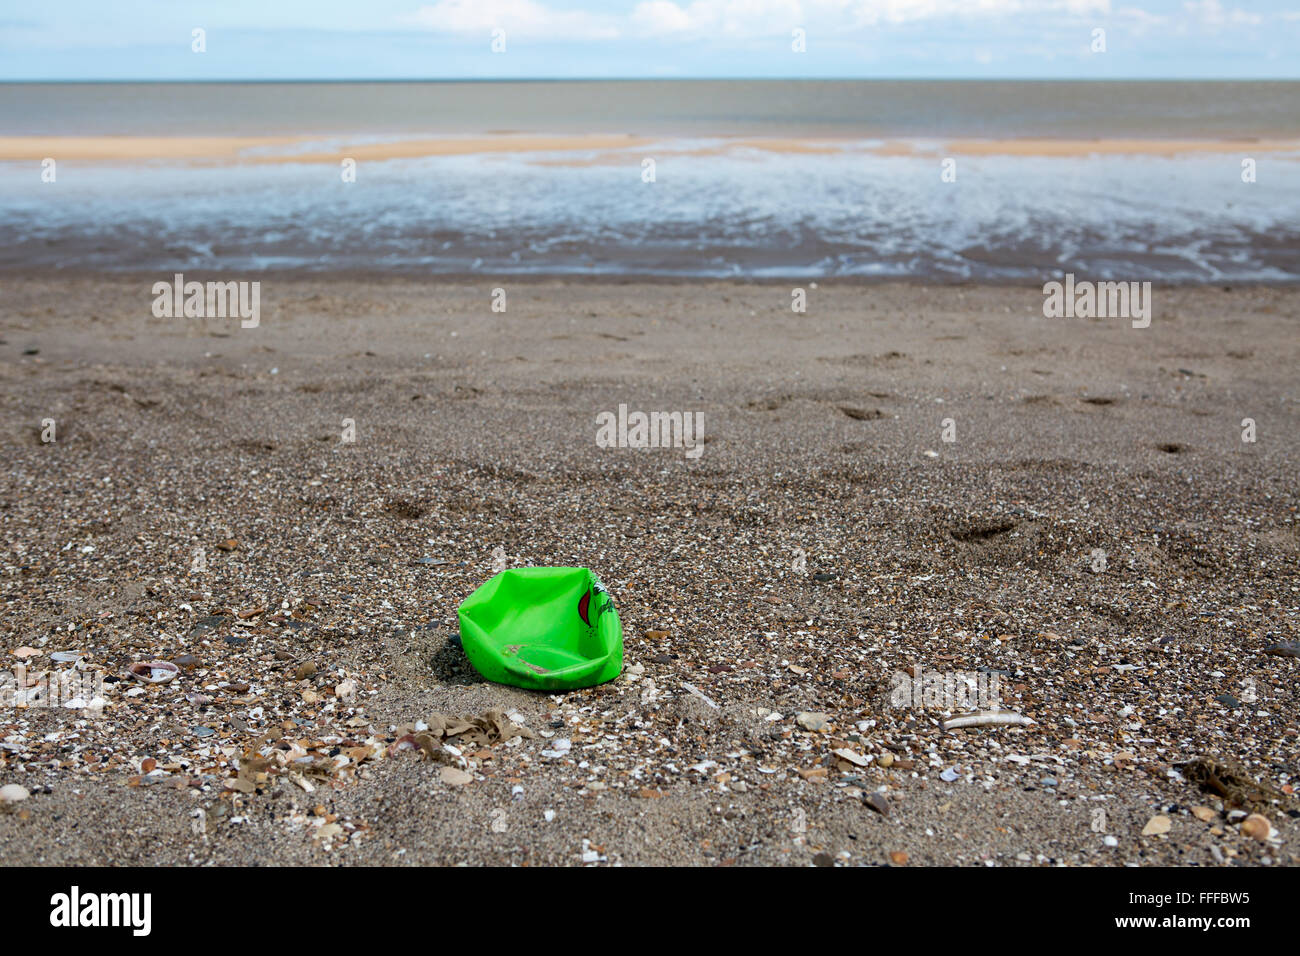 Washed up plastic waste on Mablethorpe Beach in Lincolnshire, England, UK - Stock Image